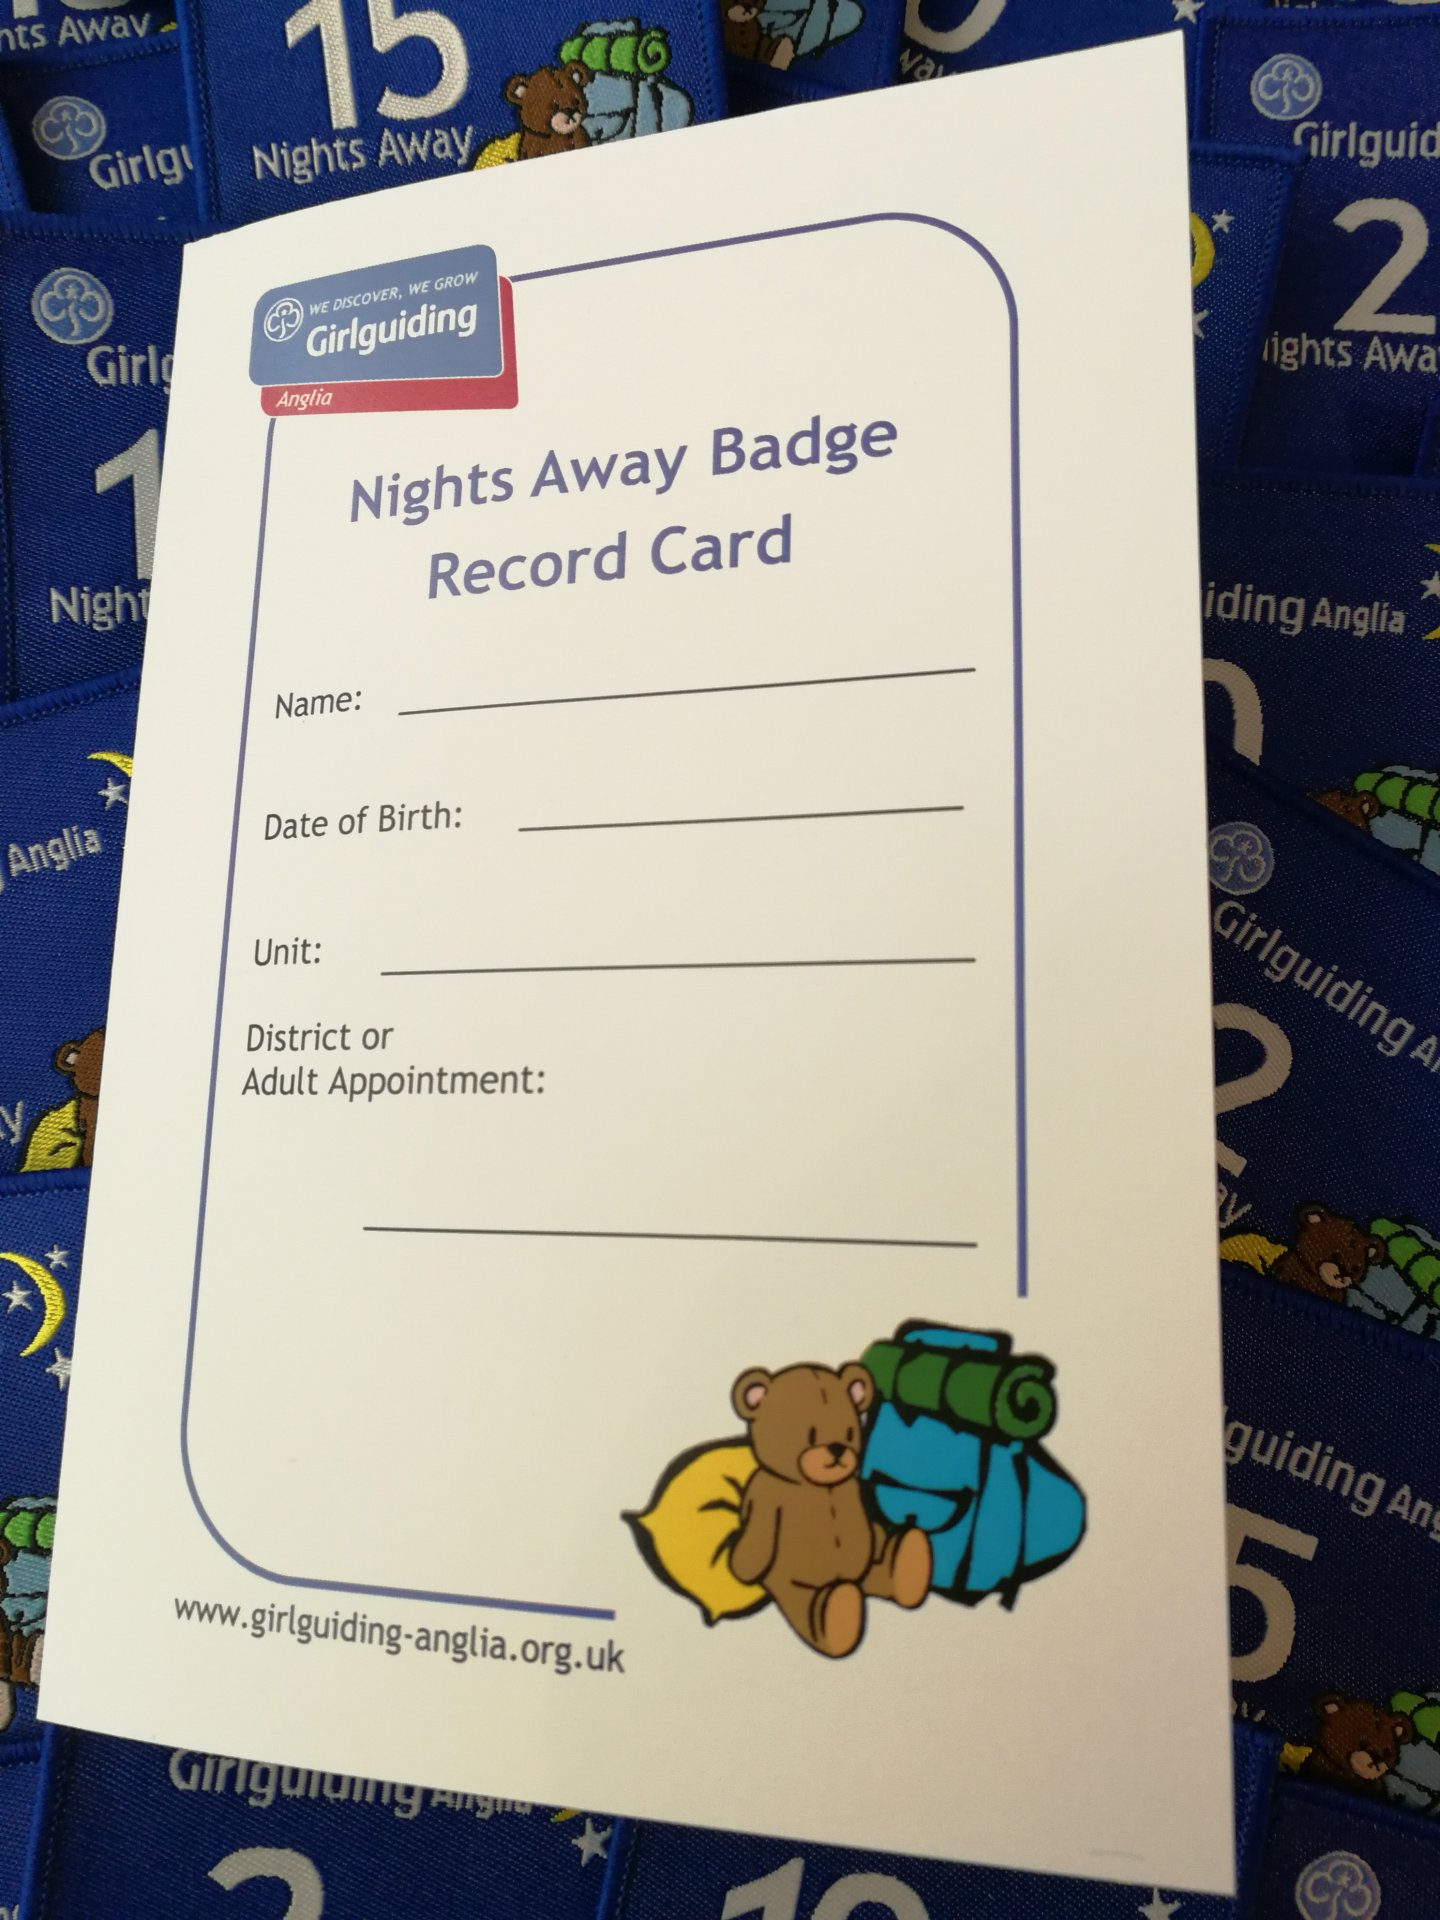 image relating to Anglia Nights Away Record Card